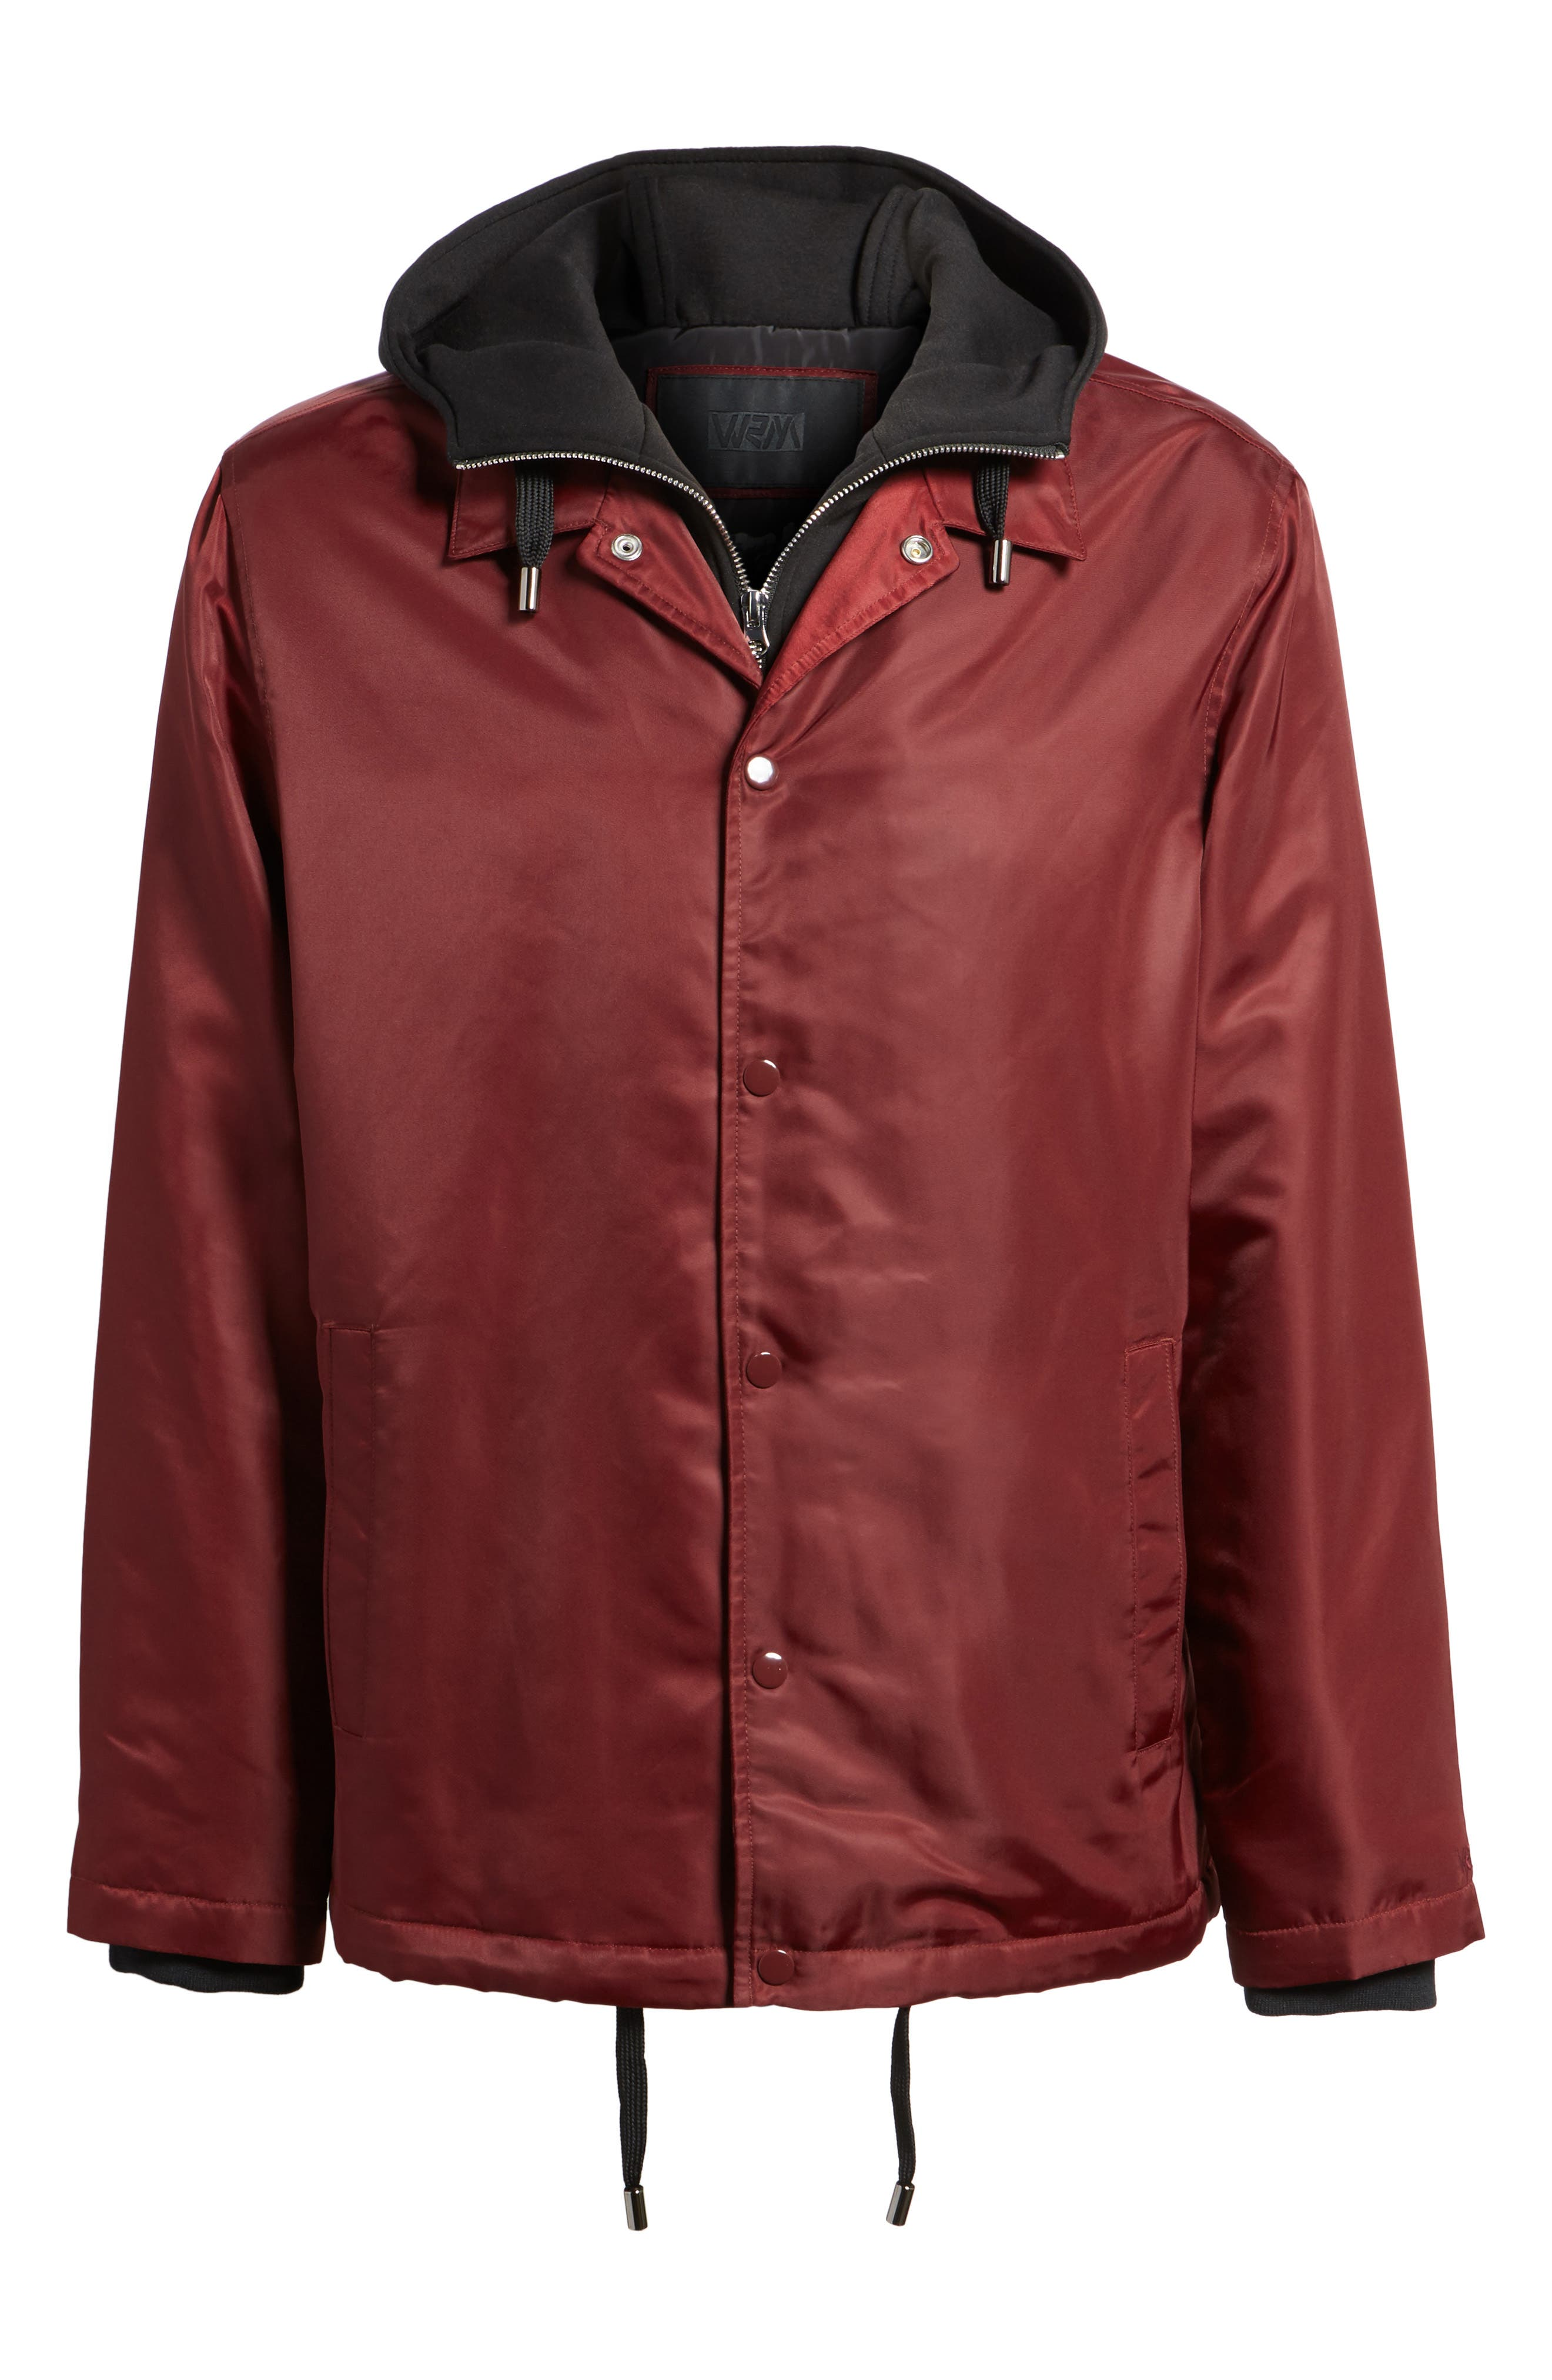 Yorkshire Hooded Coach's Jacket,                             Alternate thumbnail 5, color,                             Burgundy